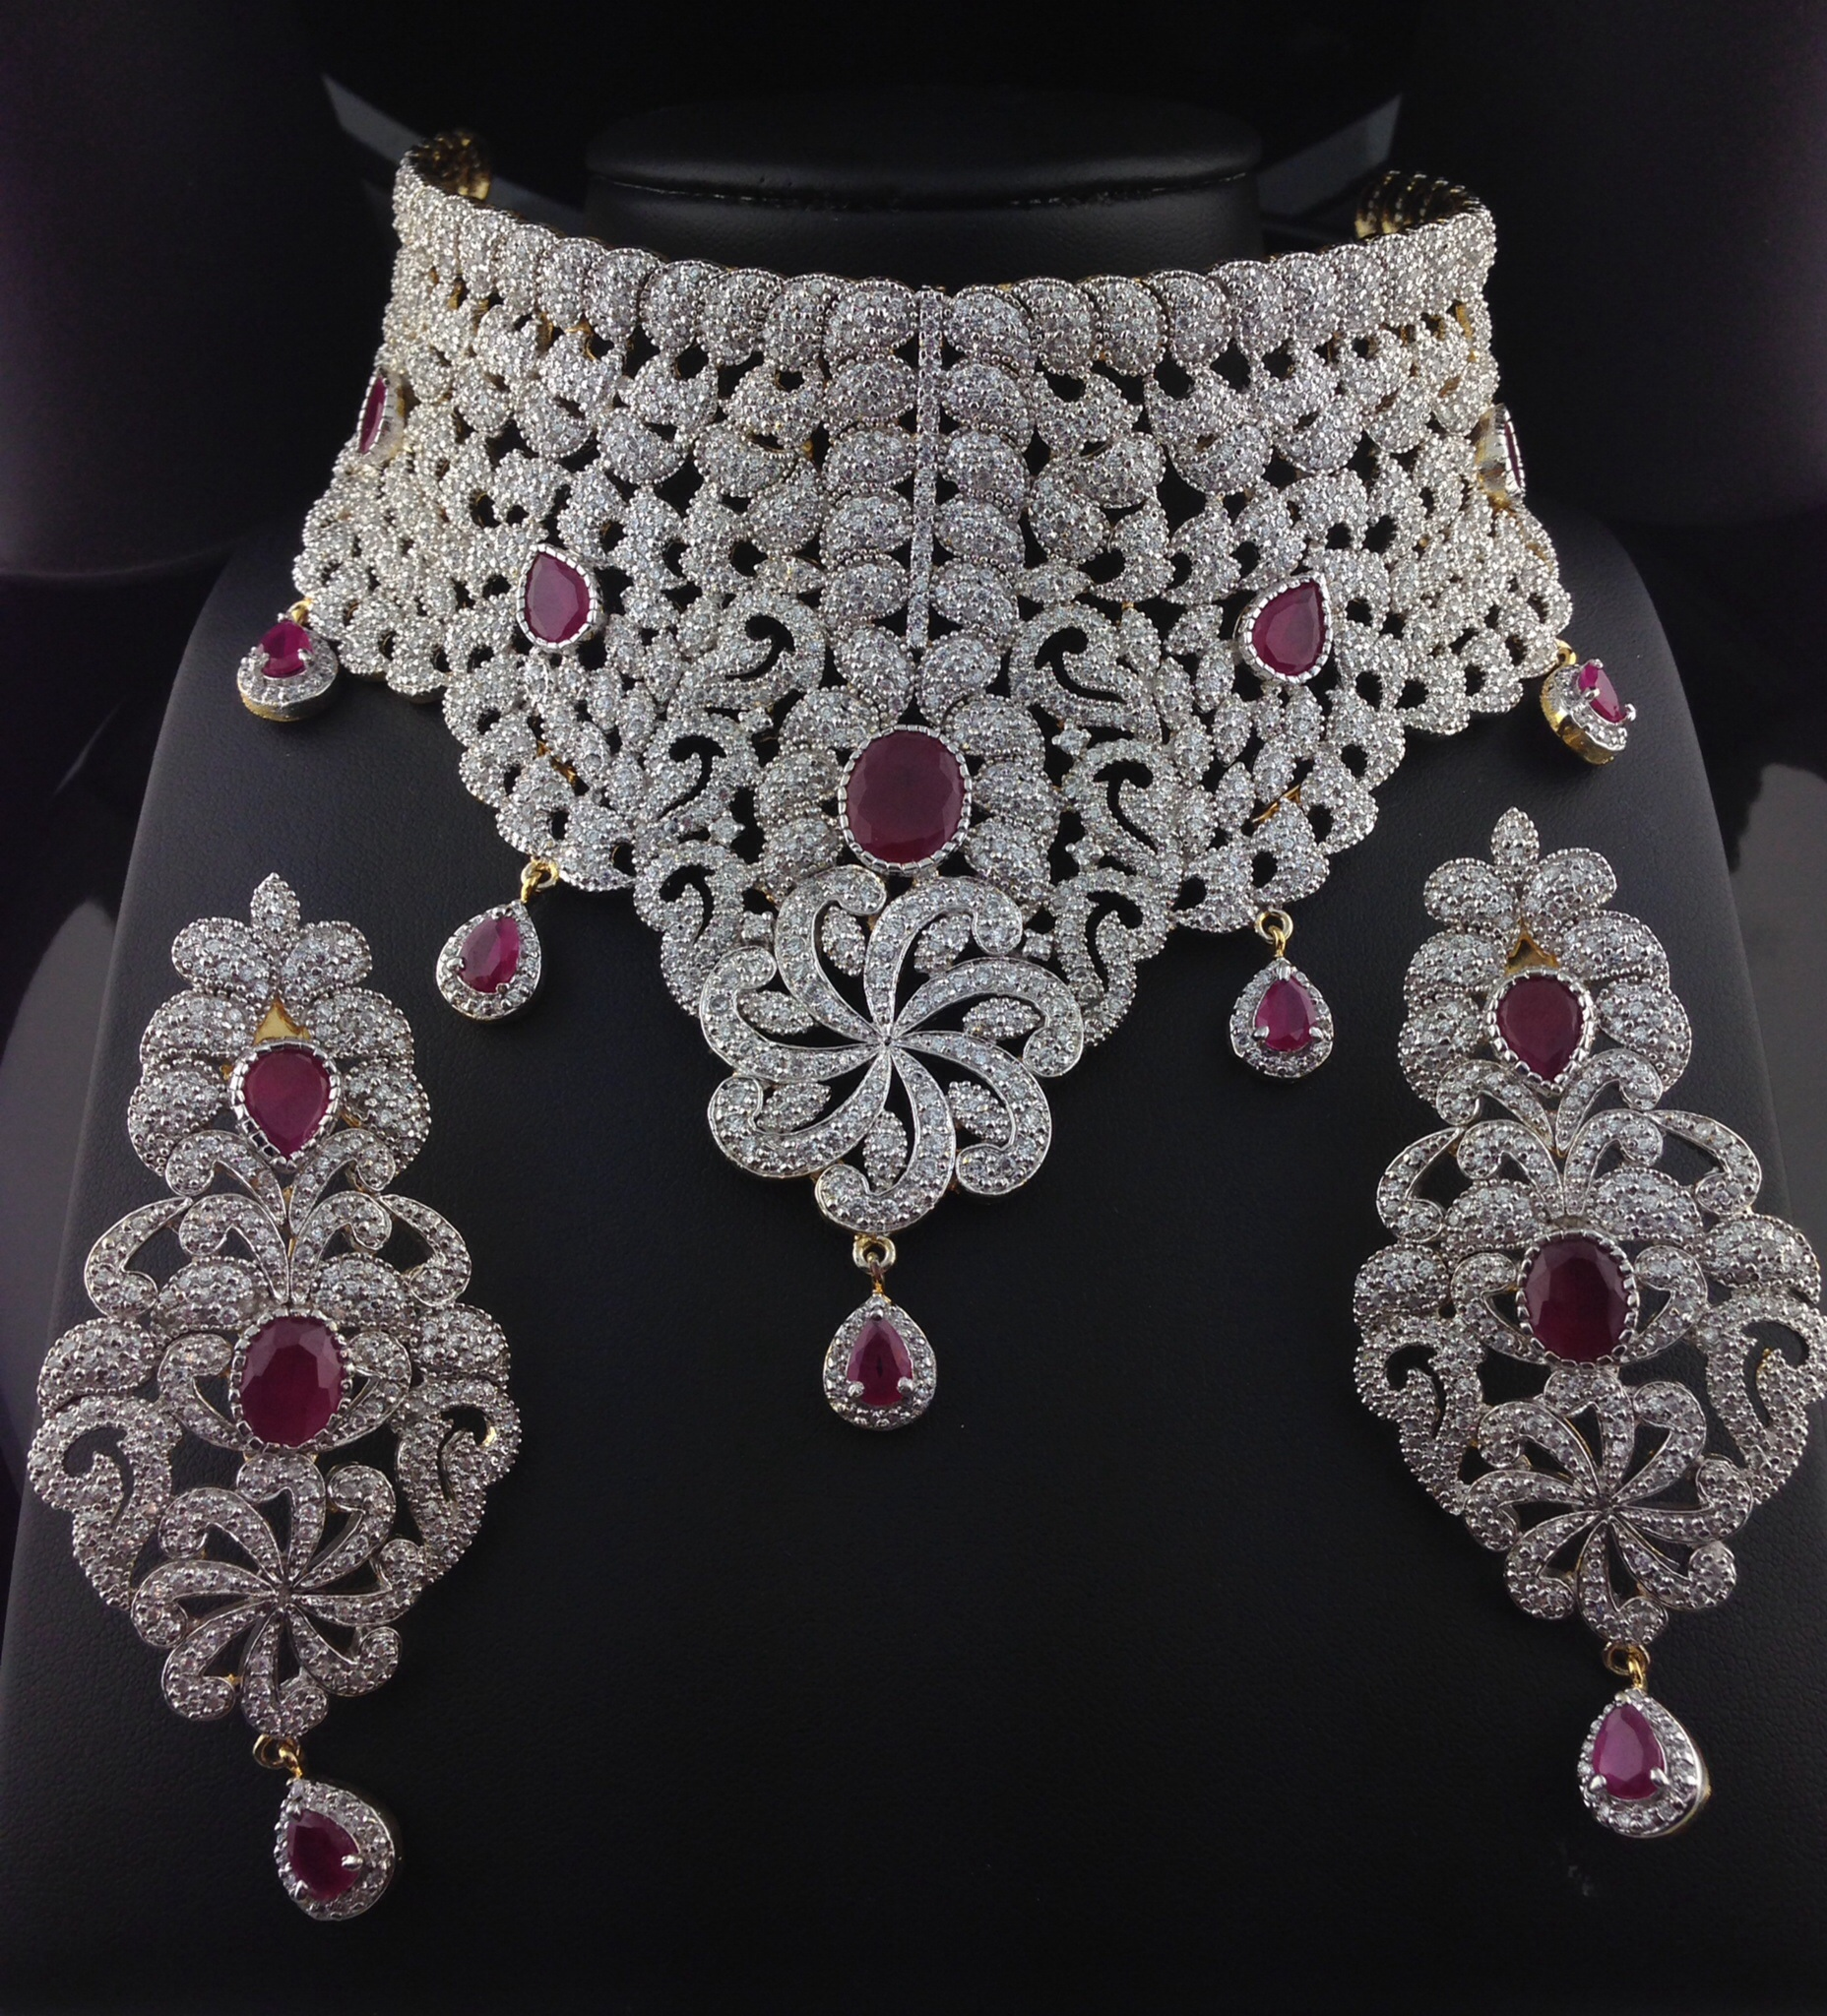 Stunning American Diamond Bridal Set With Rubies Indian Kundan